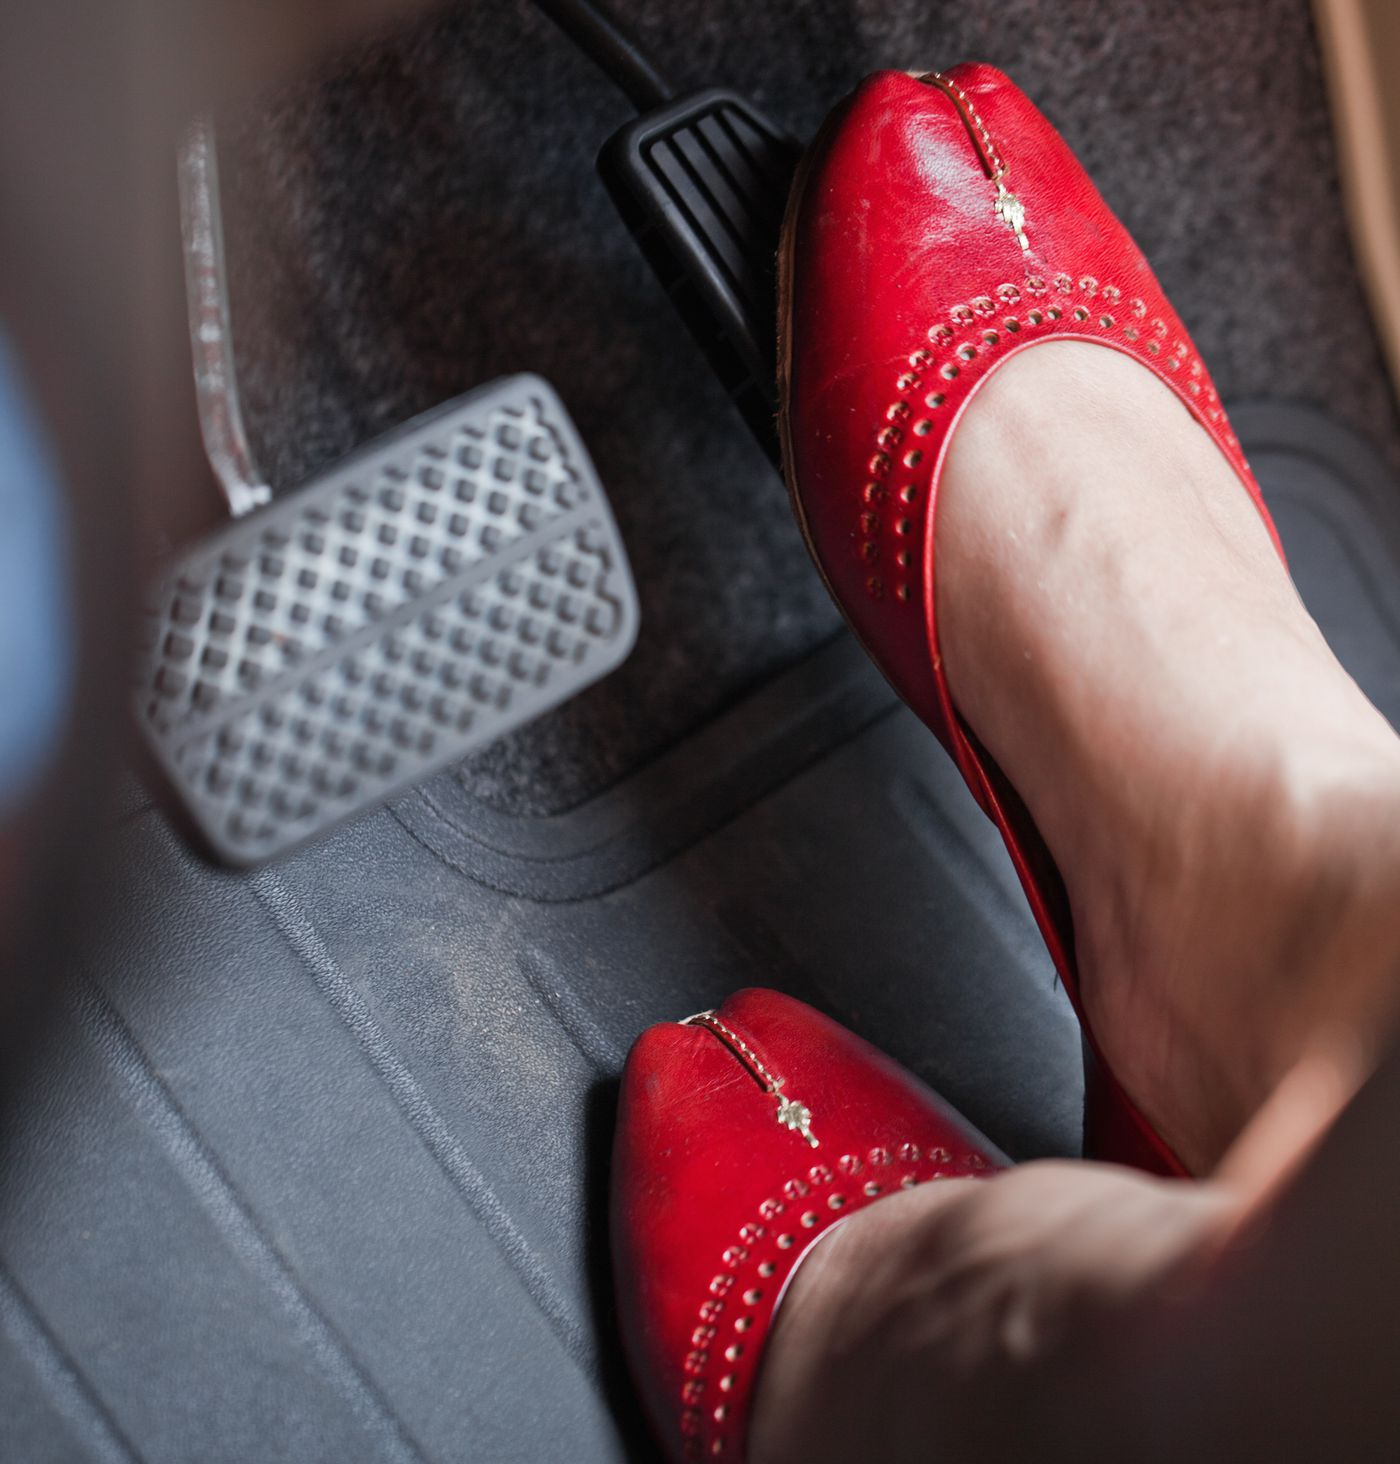 Why some experts think driving with two feet could be safer